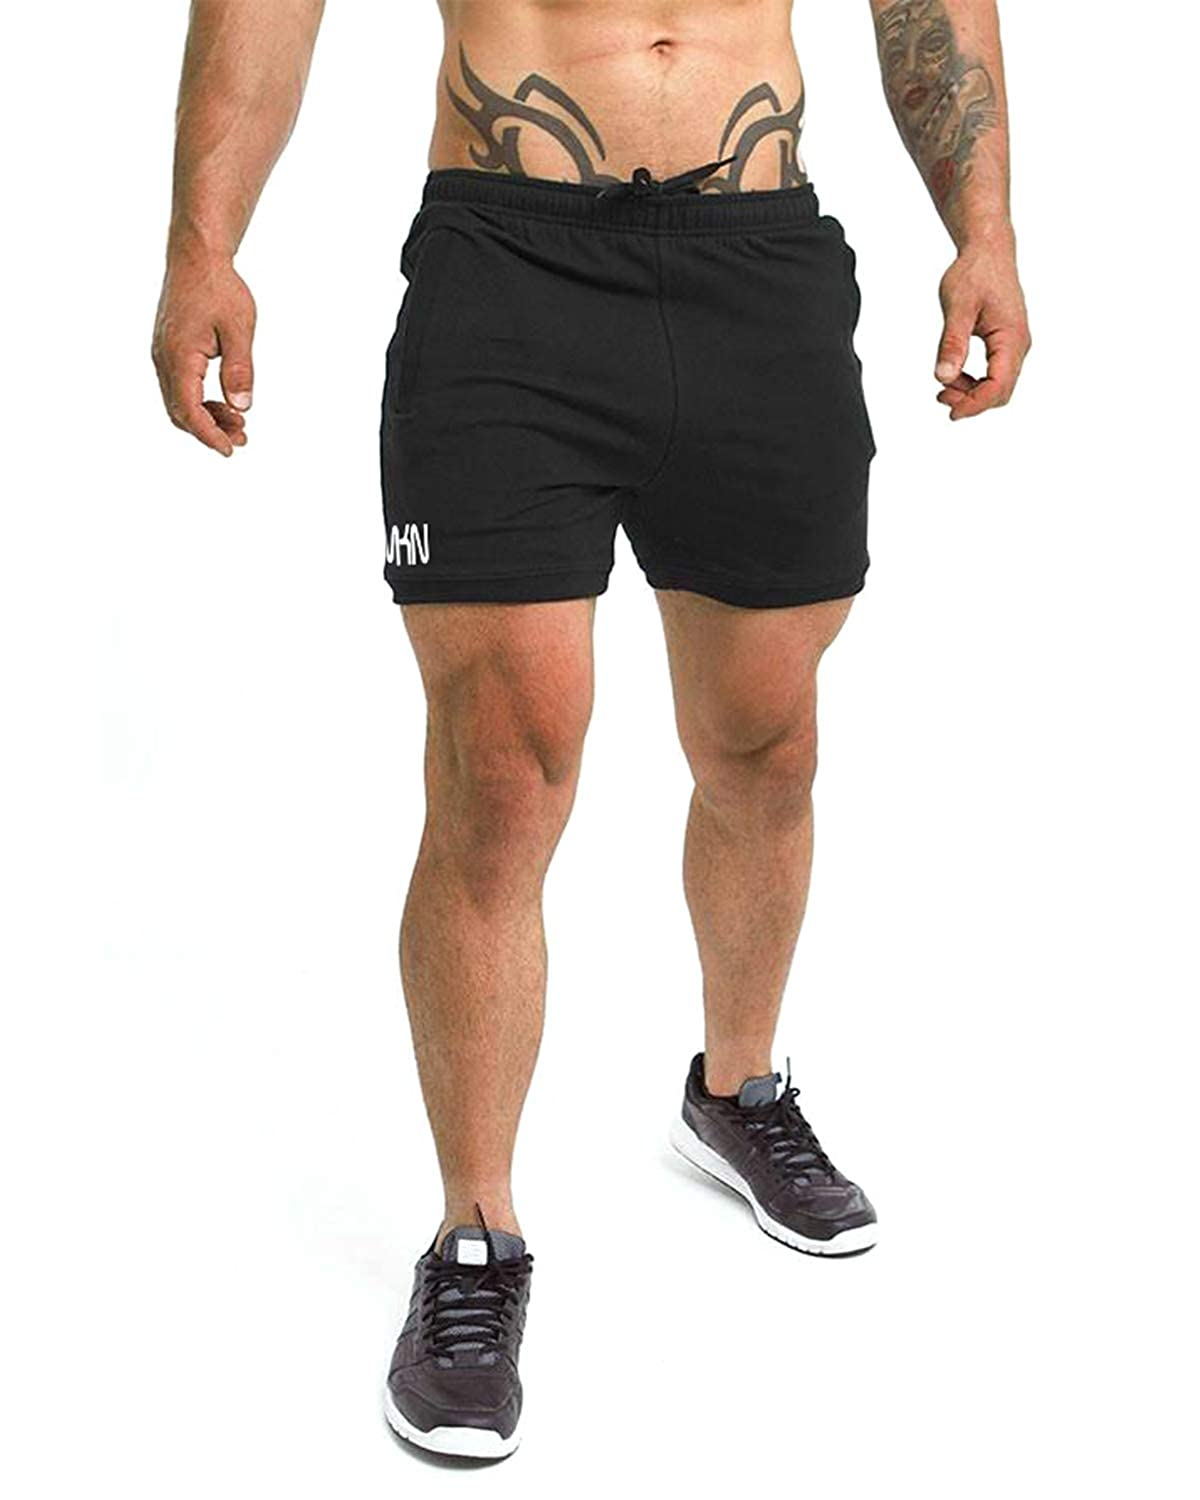 105840f26e20 Amazon.com: Shakestron Men's Fitted Shorts Bodybuilding Squat Gym Running  Tight Fitted Shorts Leg Days: Clothing